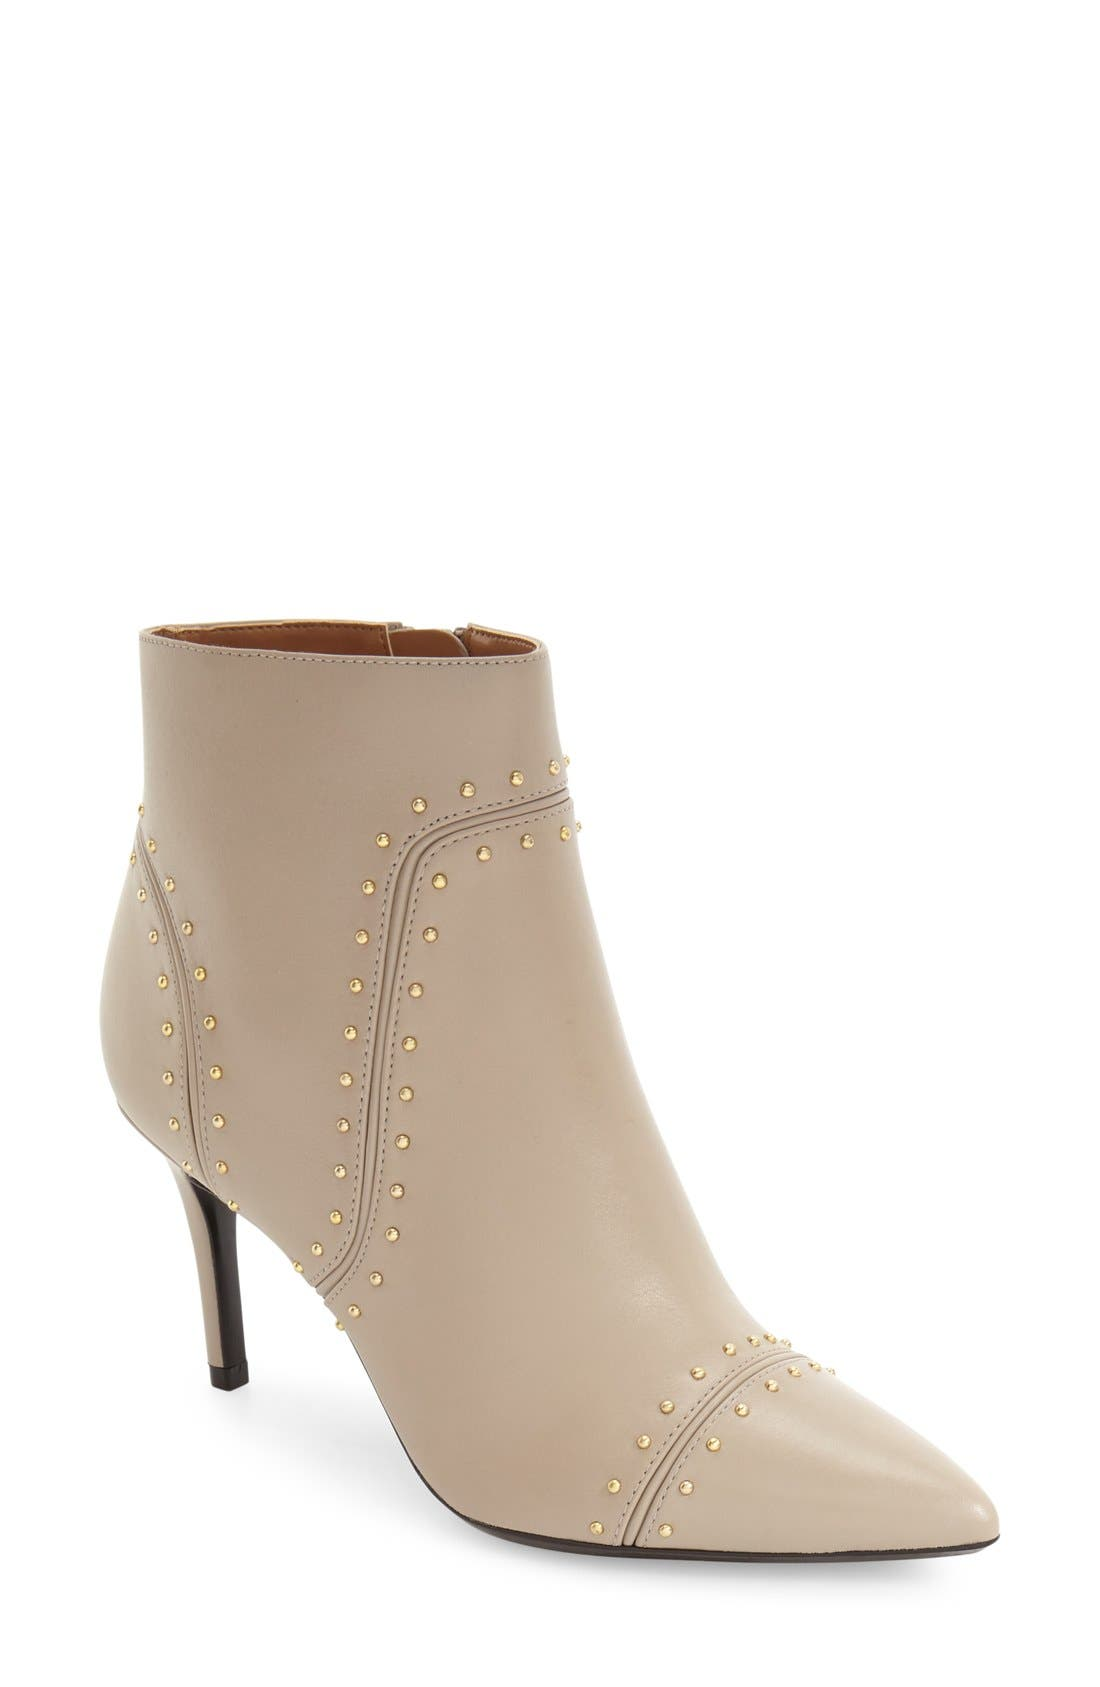 Alternate Image 1 Selected - Calvin Klein Grazie Studded Pointy Toe Bootie (Women)